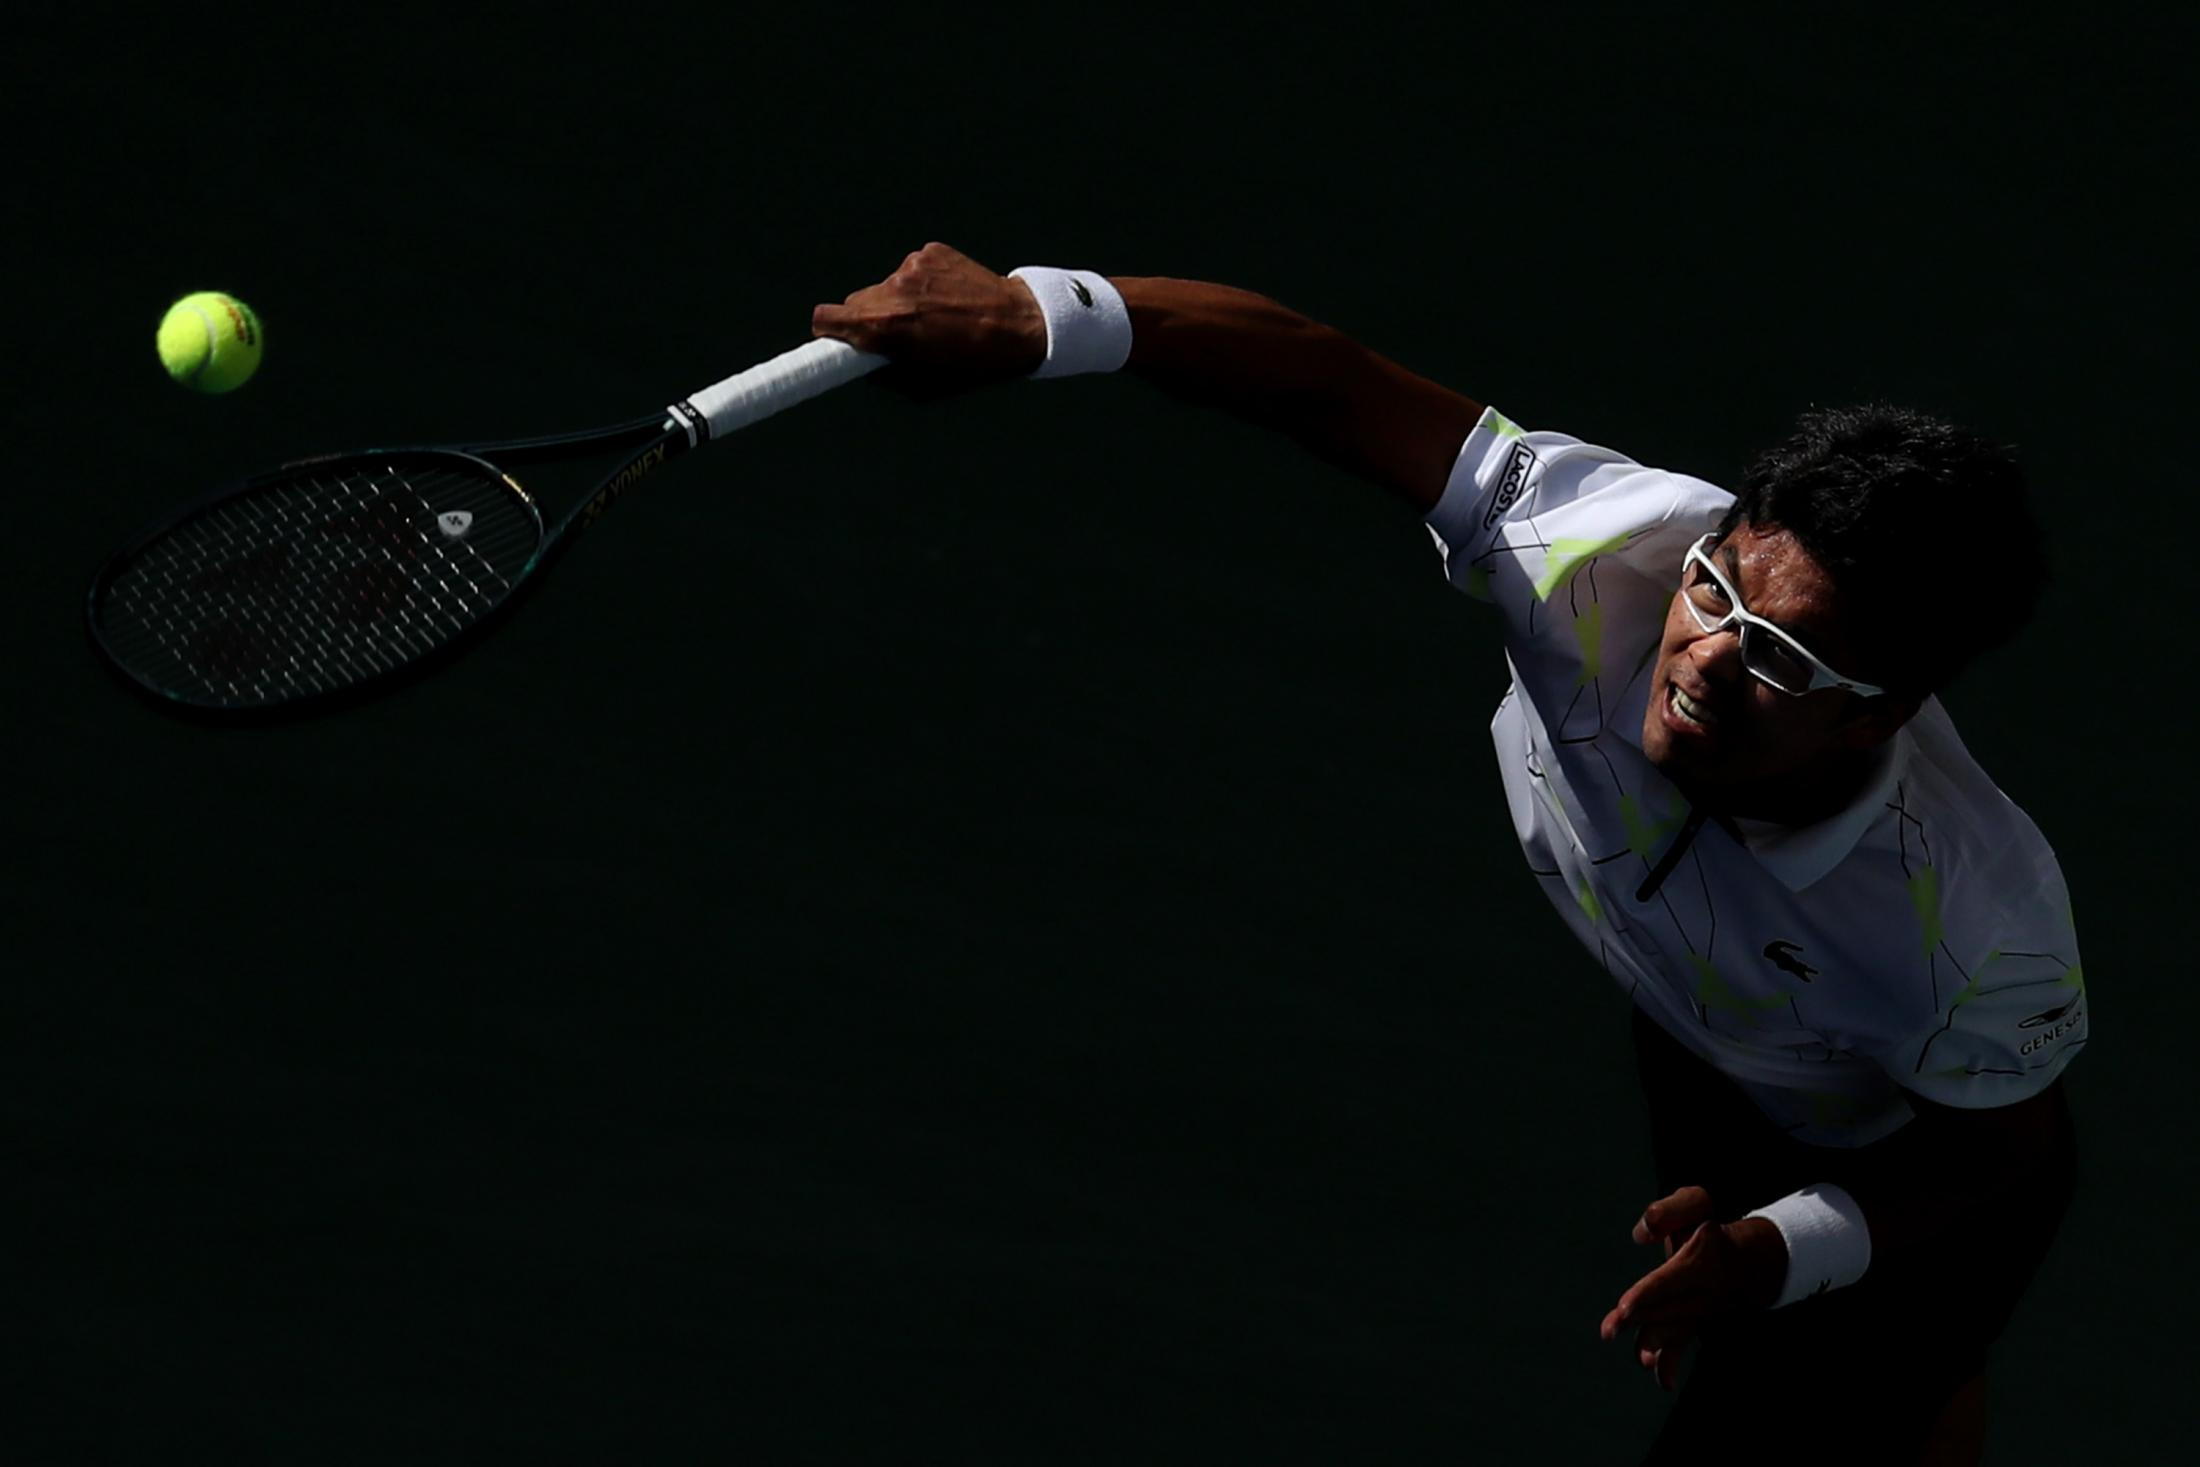 NEW YORK, NEW YORK - AUGUST 31: Hyeon Chung of South Korea serves the ball during his Men's Singles third round match against Rafael Nadal of Spain on day six of the 2019 US Open at the USTA Billie Jean King National Tennis Center on August 31, 2019 in Queens borough of New York City. (Photo by Katharine Lotze/Getty Images)